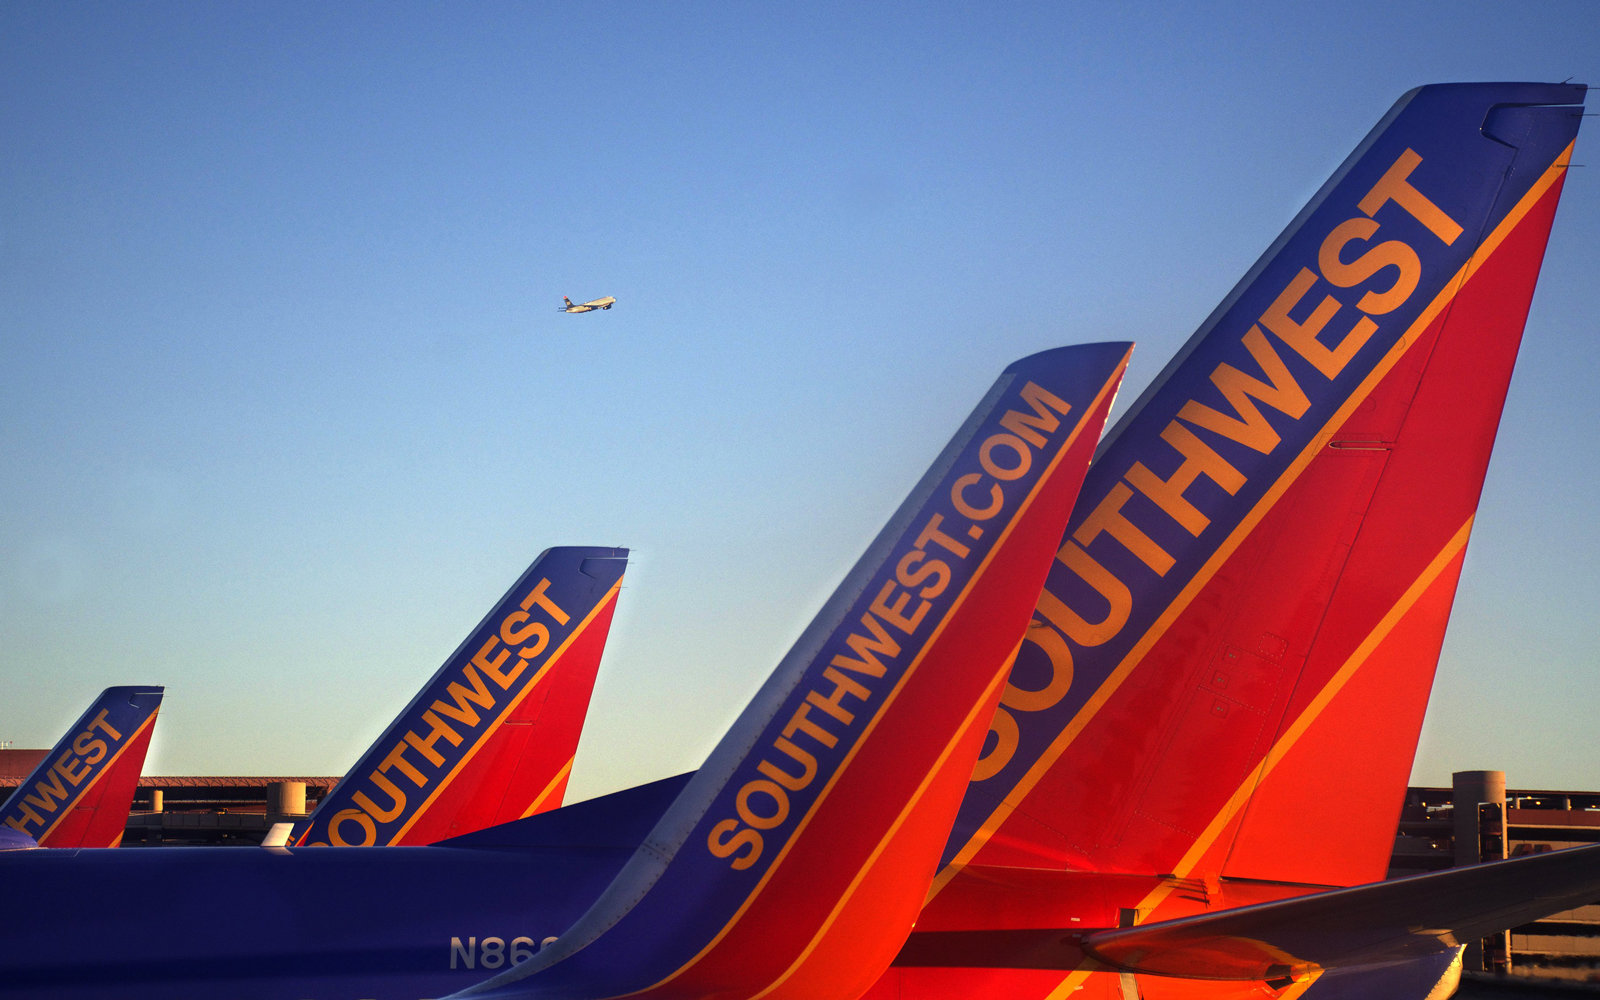 3 New Airlines Offer Deals